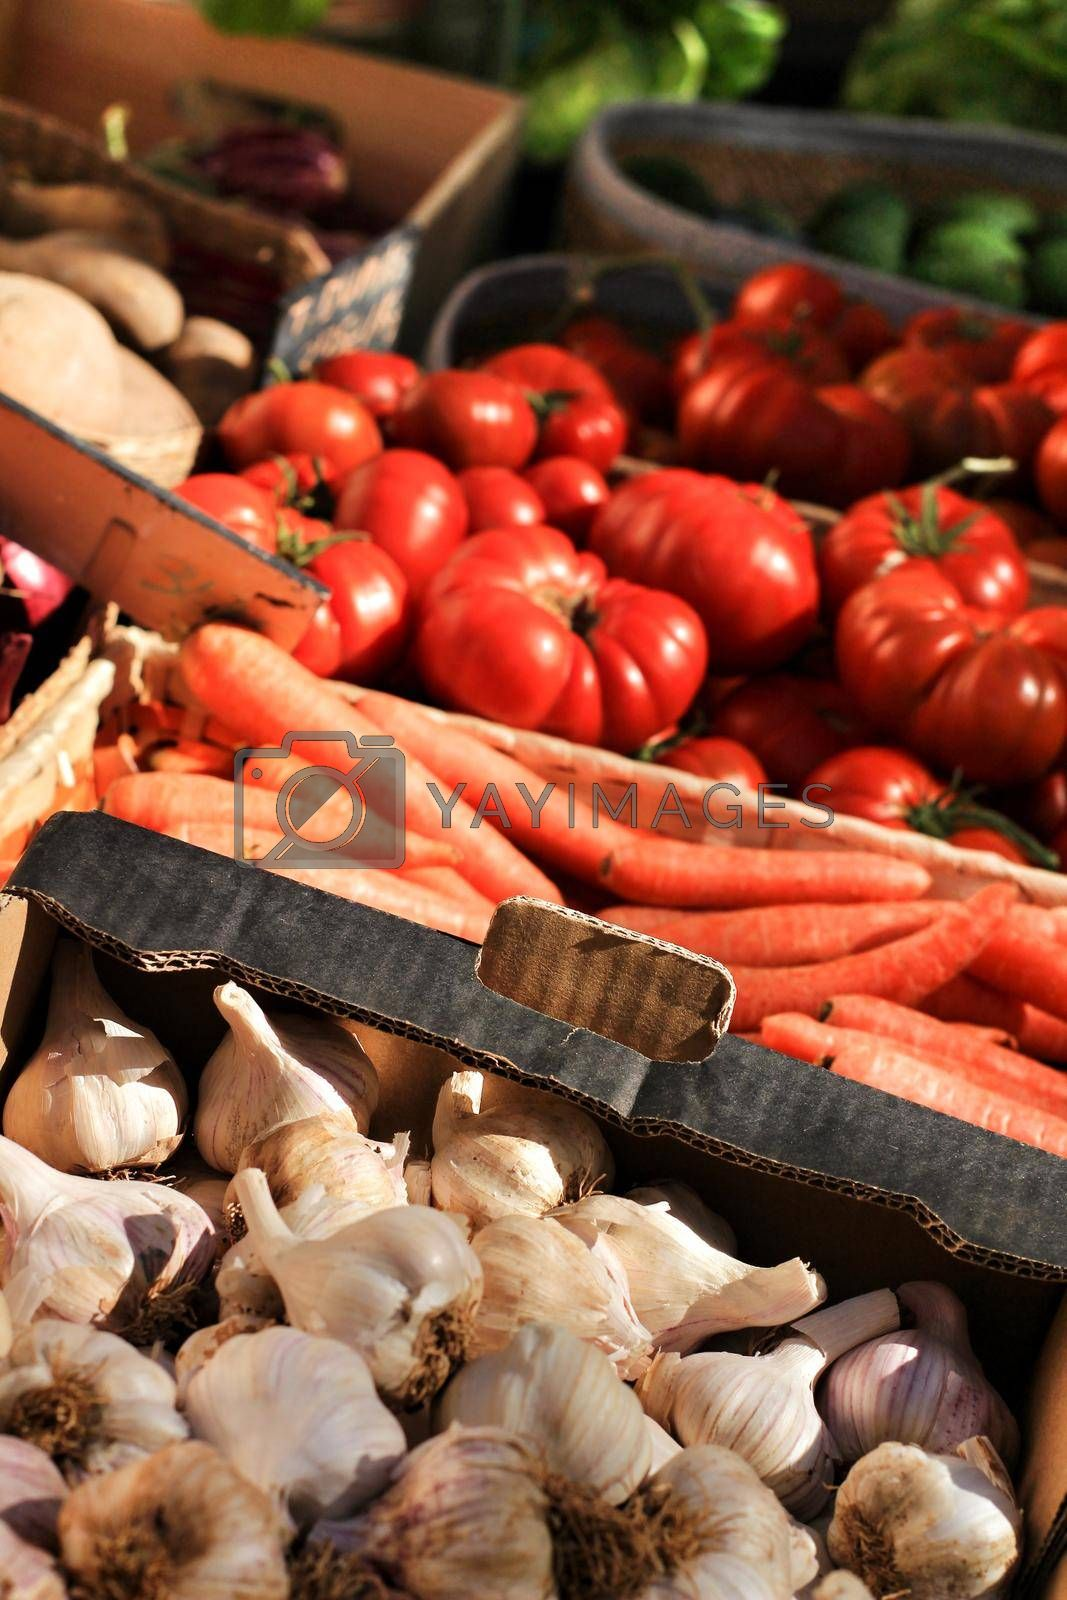 Vegetables for sale at a ecological market stall in Elche, Alicante, Spain.